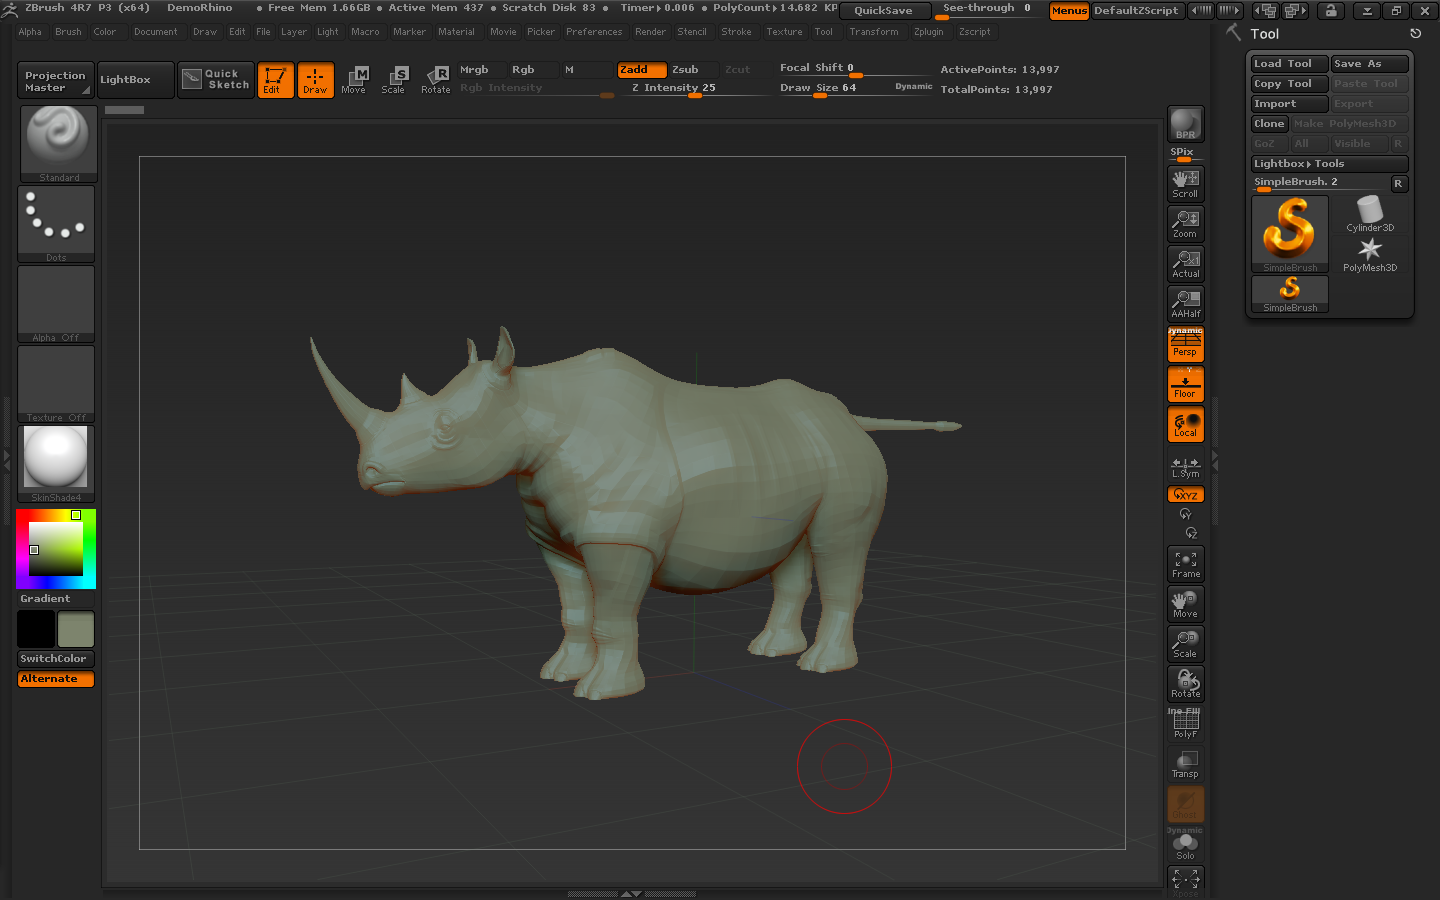 ZBrush 4R7 for mac截图2